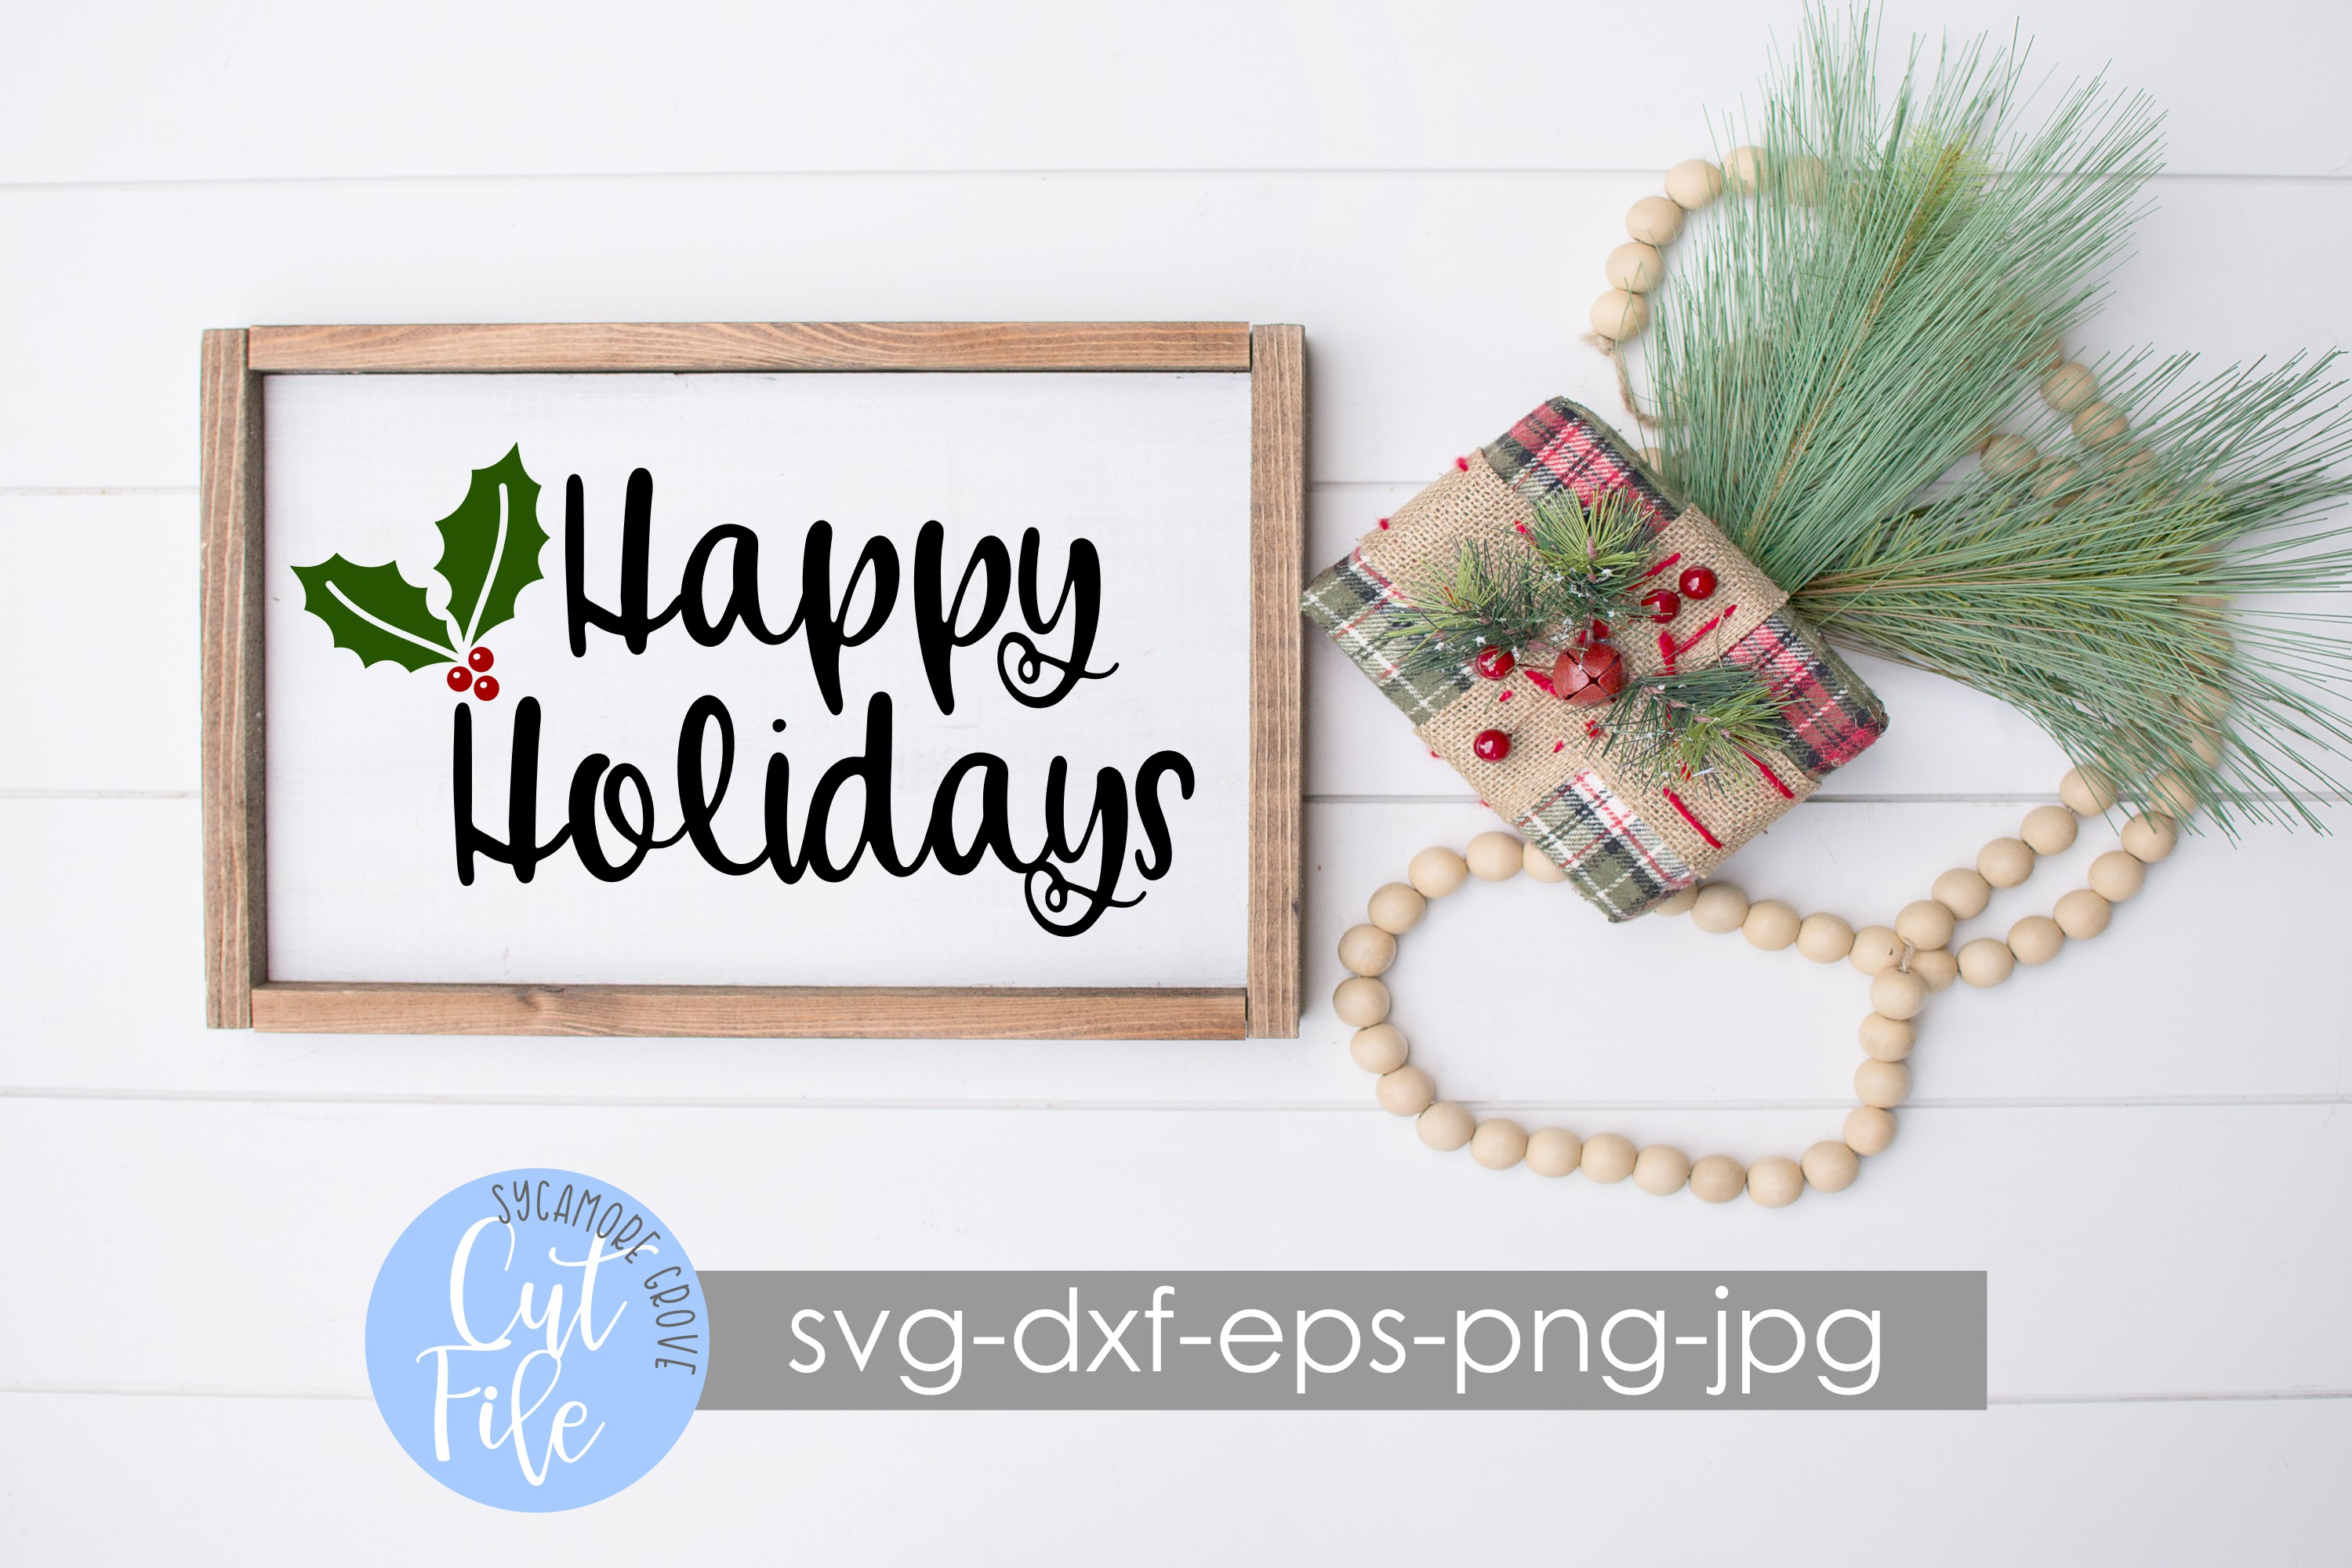 Happy Holidays SVG example image 3